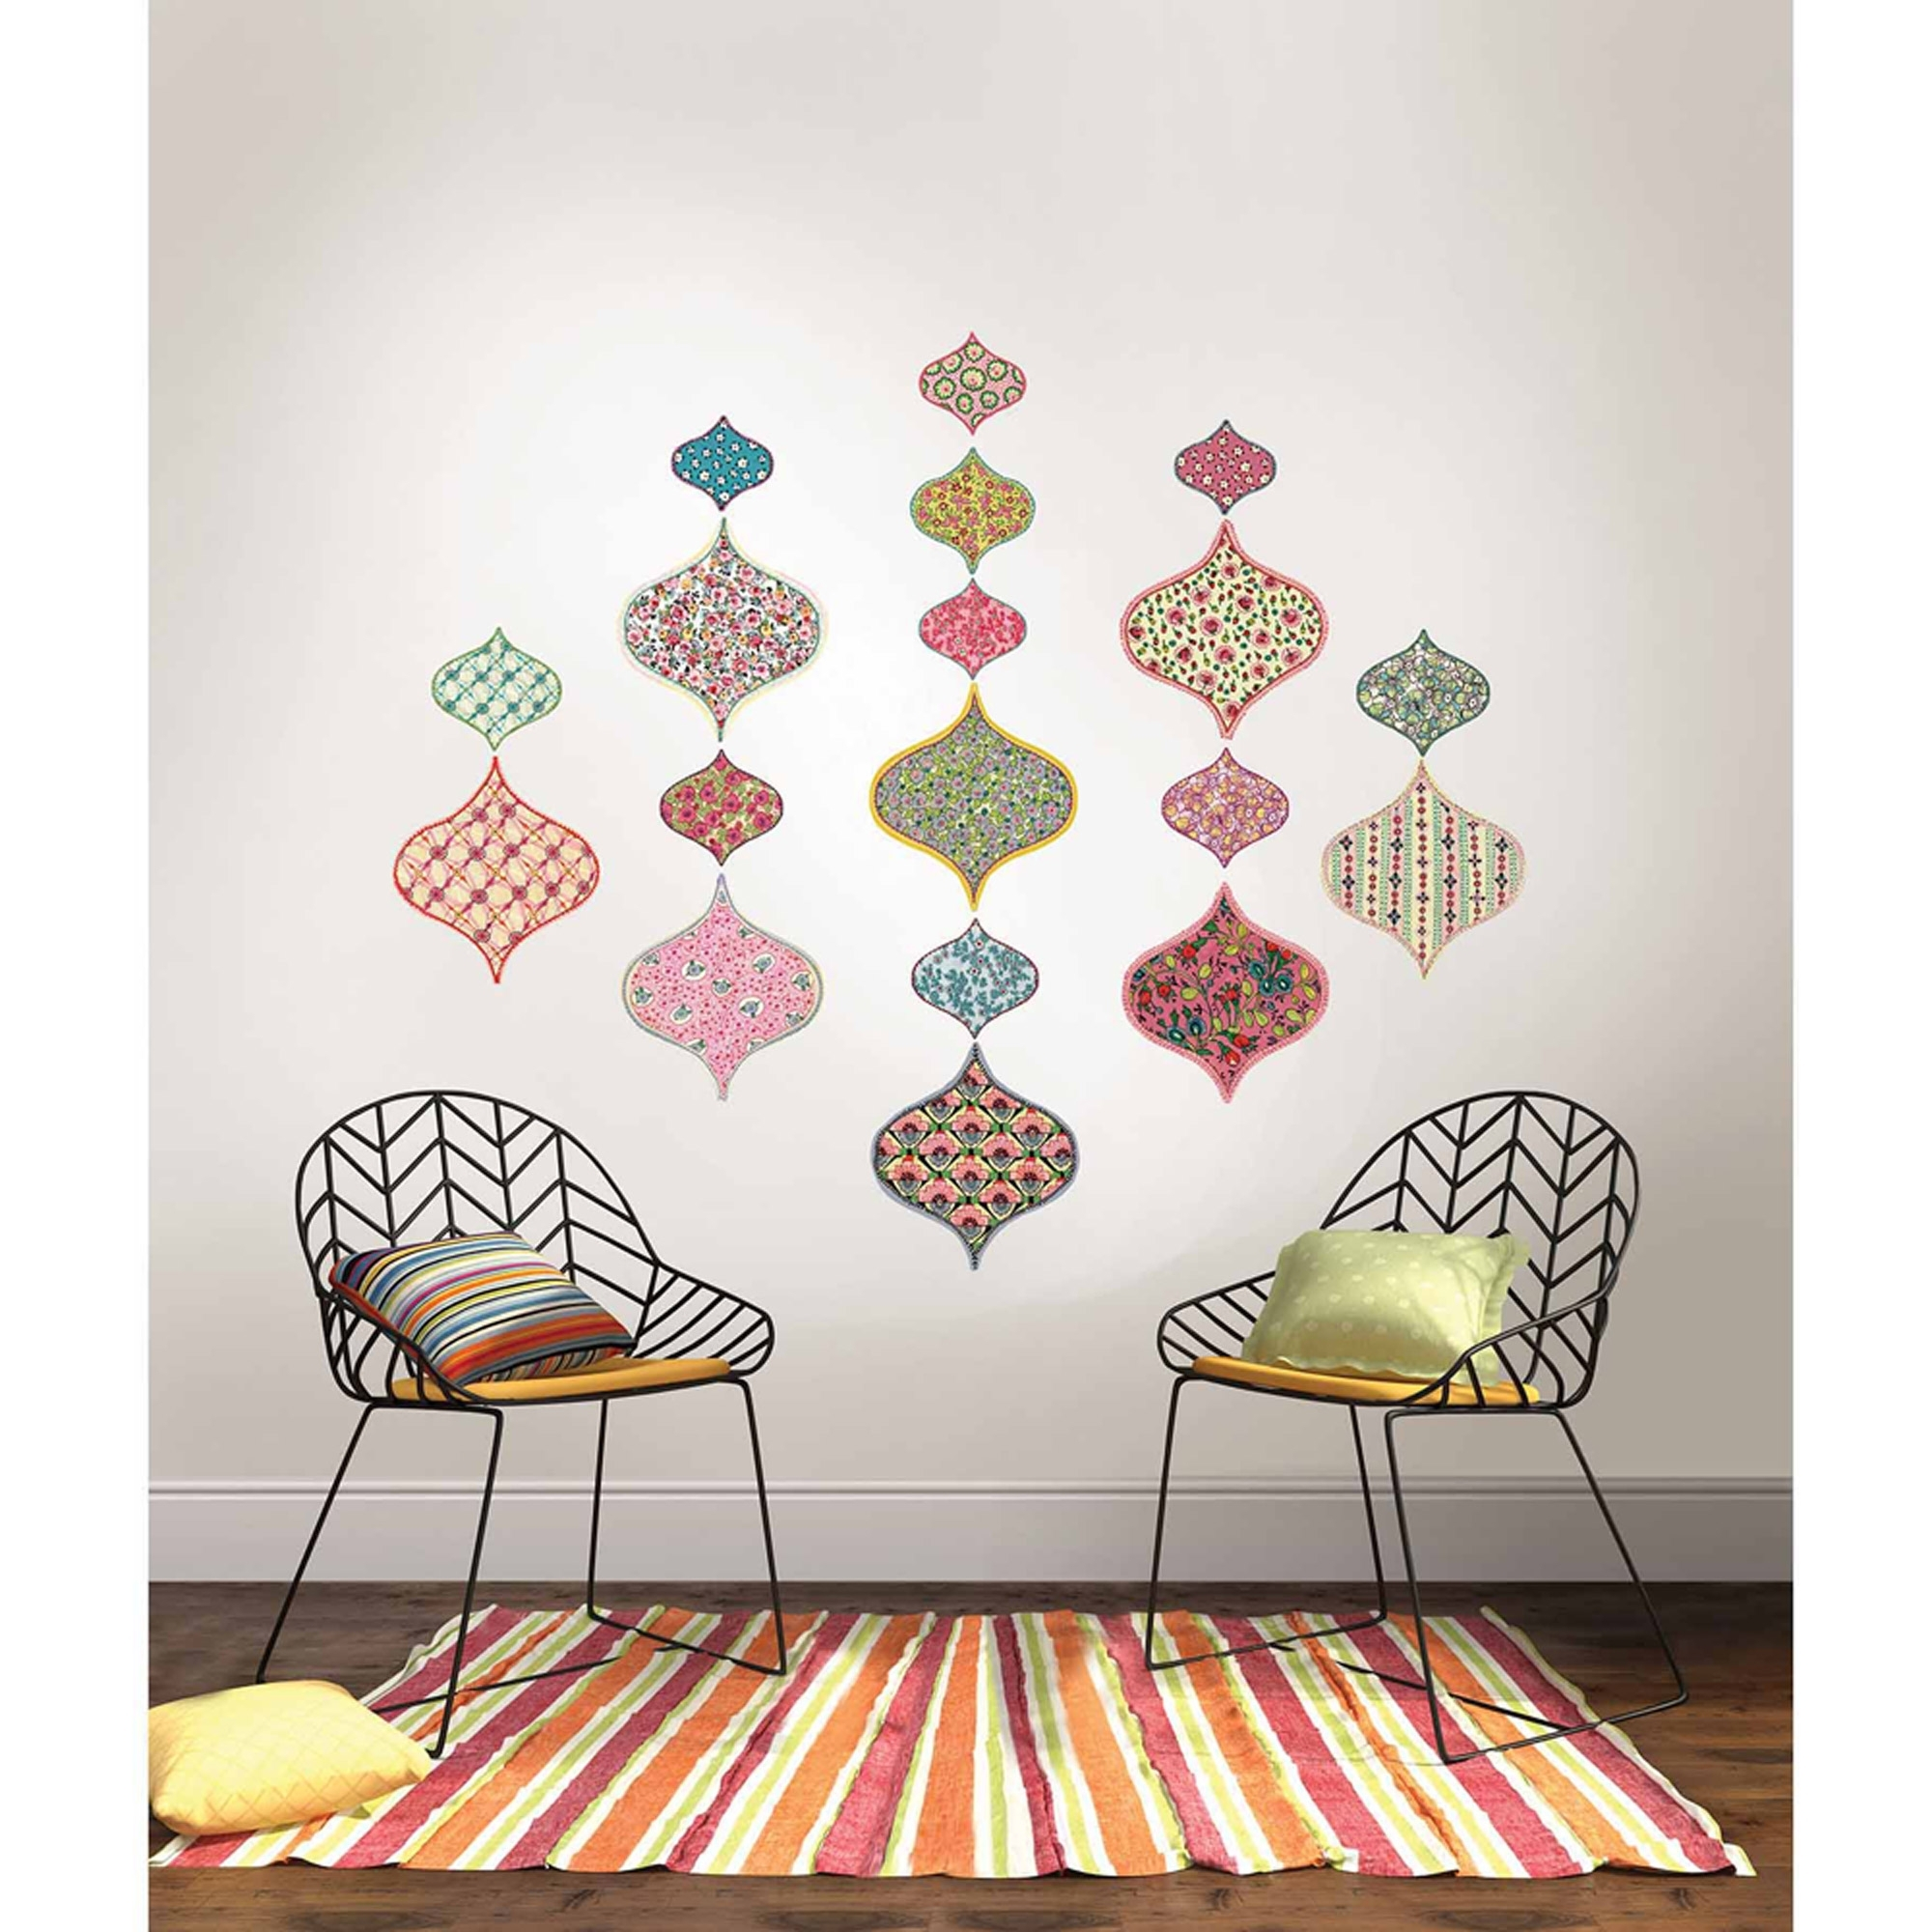 Wall Pops Boho Chic Ogee Large Wall Art Decal Kit – Walmart Pertaining To Most Recently Released Boho Chic Wall Art (View 12 of 15)